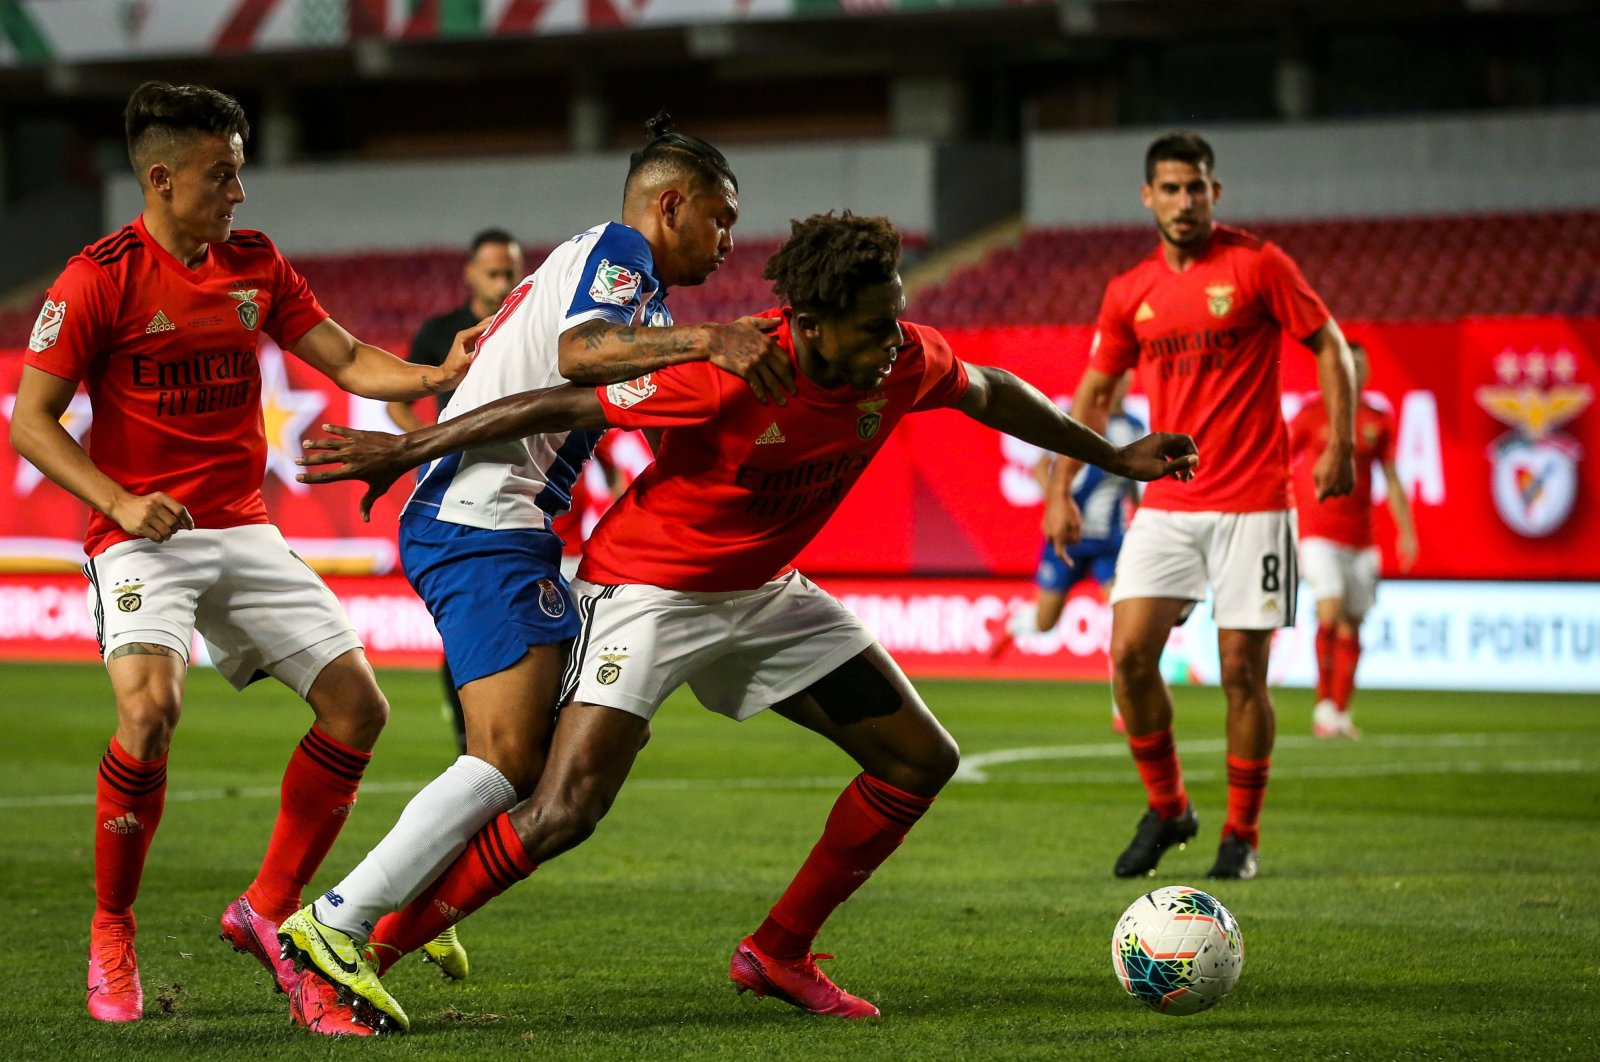 FC Porto's Mexican forward Jesus 'Tecatito' Corona (C) vies with Benfica's Argentinian forward Franco Cervi (L) and Benfica's Portuguese defender Nuno Tavares during the 'Taca de Portugal' (Portugal's Cup) final football match between SL Benfica and FC Porto at the City Stadium of Coimbra on August 1, 2020. (AFP Photo)